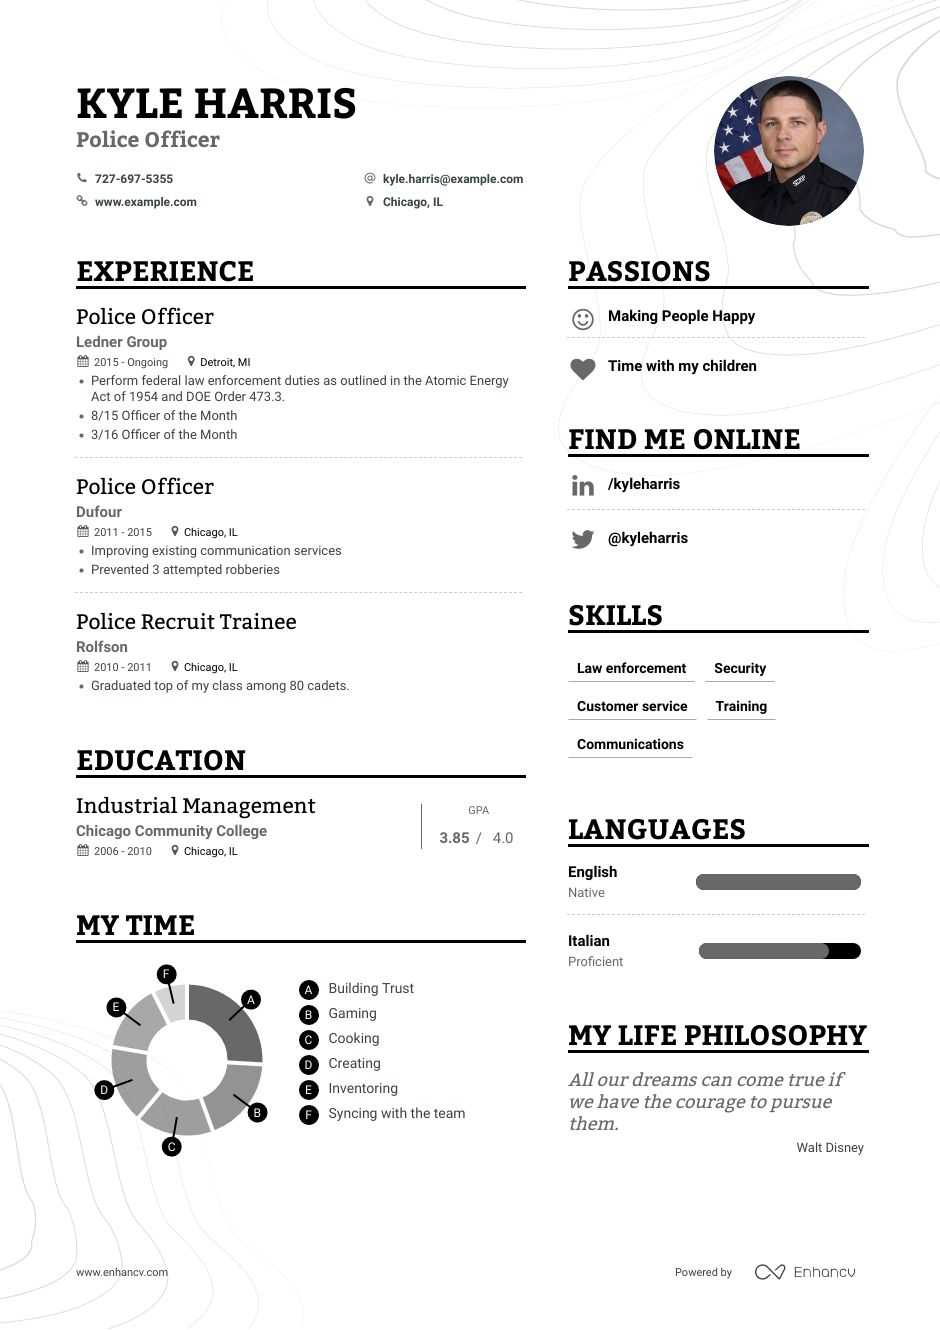 top police officer resume examples expert tips enhancv experienced coaching experience on Resume Experienced Police Officer Resume